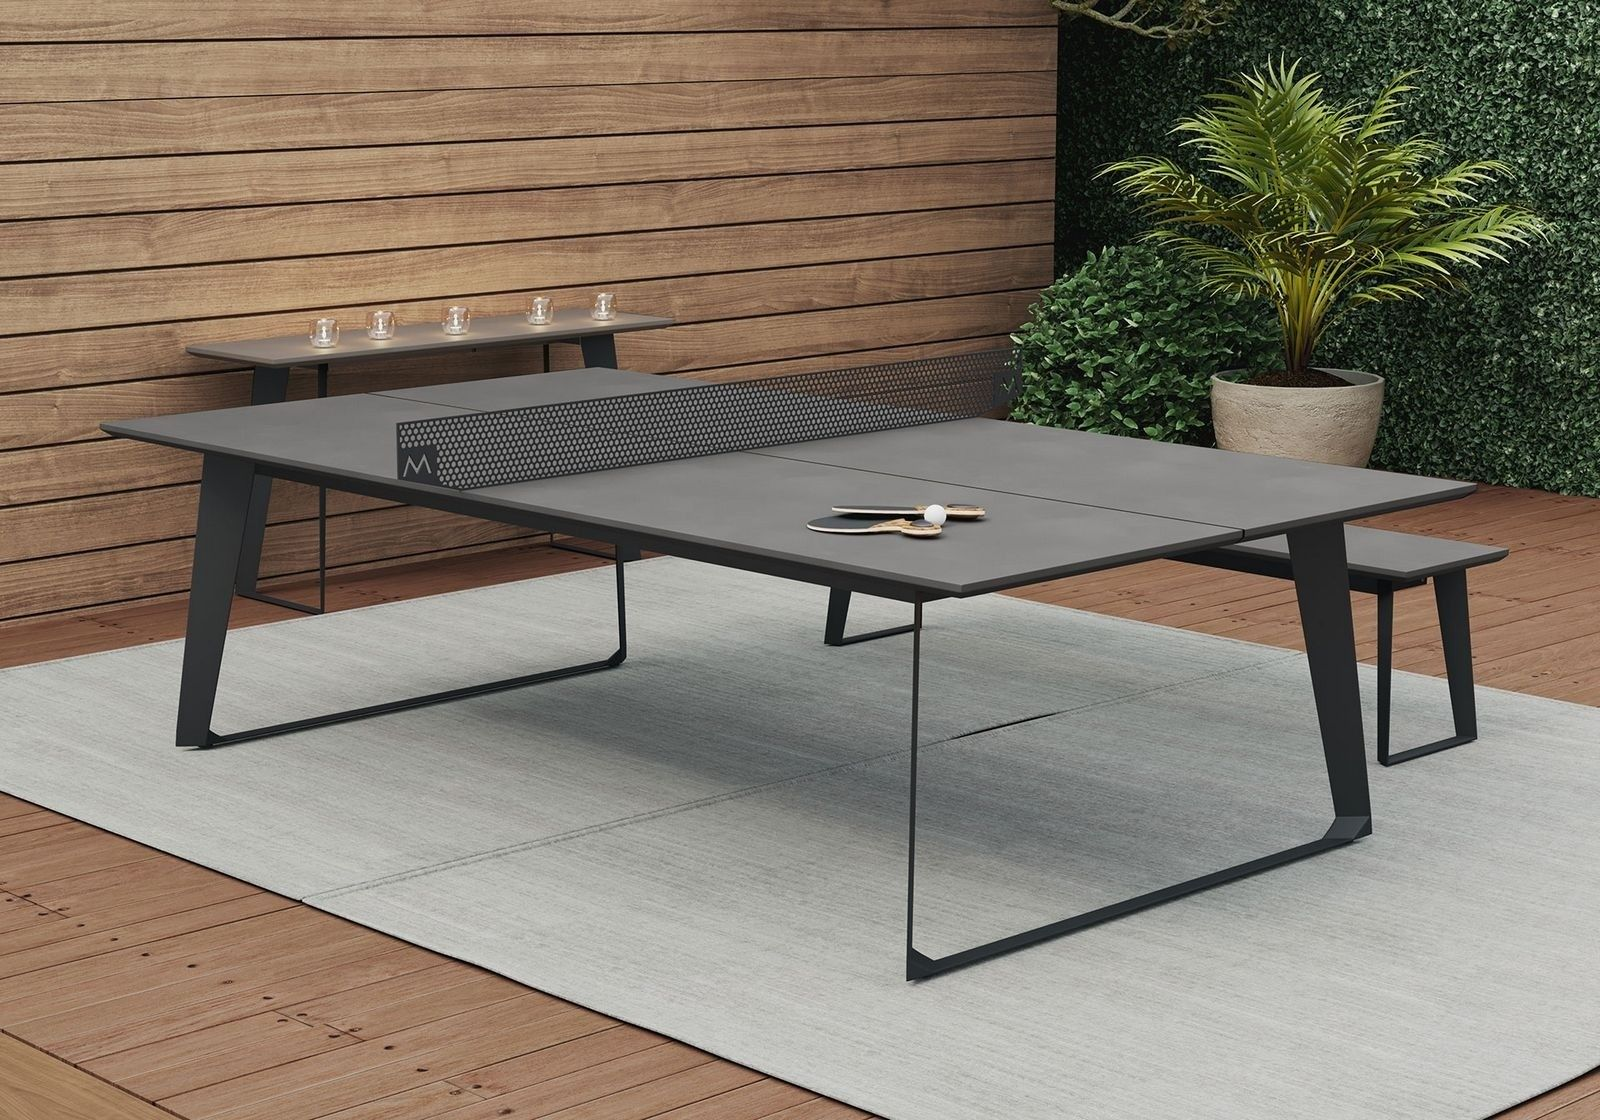 Outdoor Ping Pong Table Google Search Outdoor Ping Pong Table Ping Pong Table Coffee Table Wood